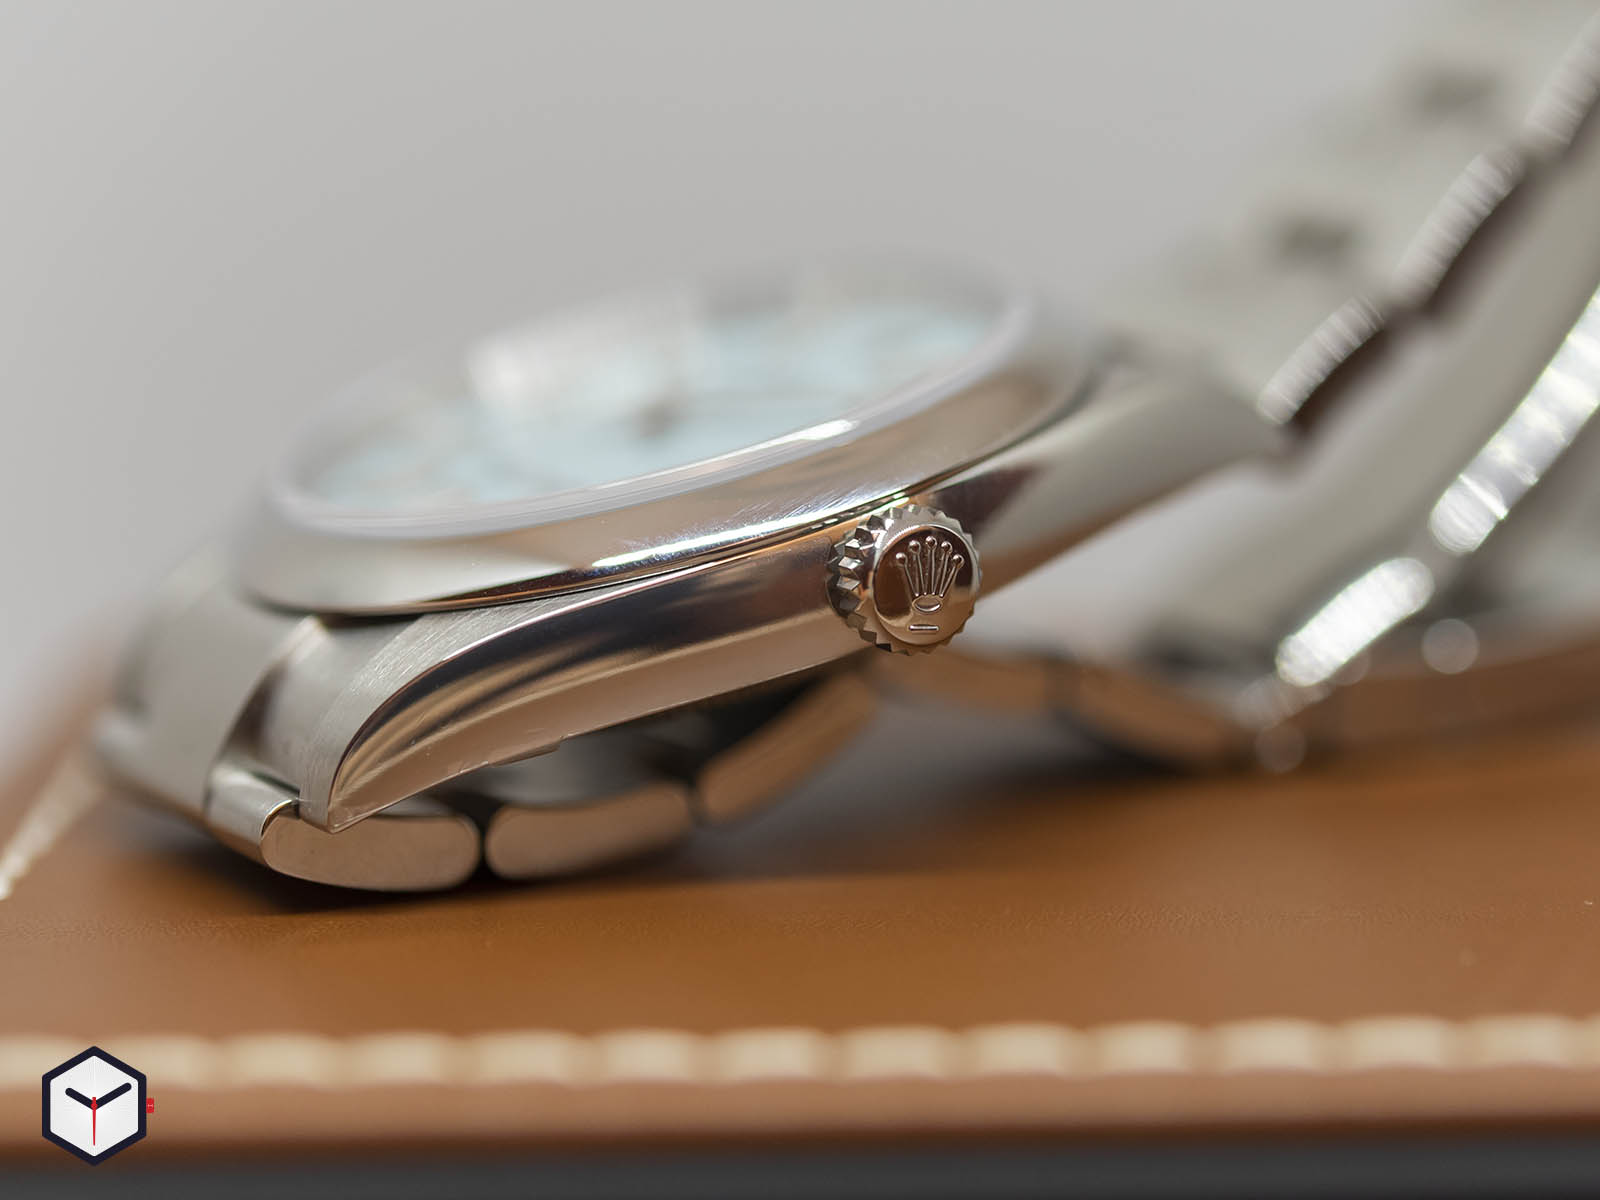 rolex-oyster-perpetual-36mm-2020-5.jpg